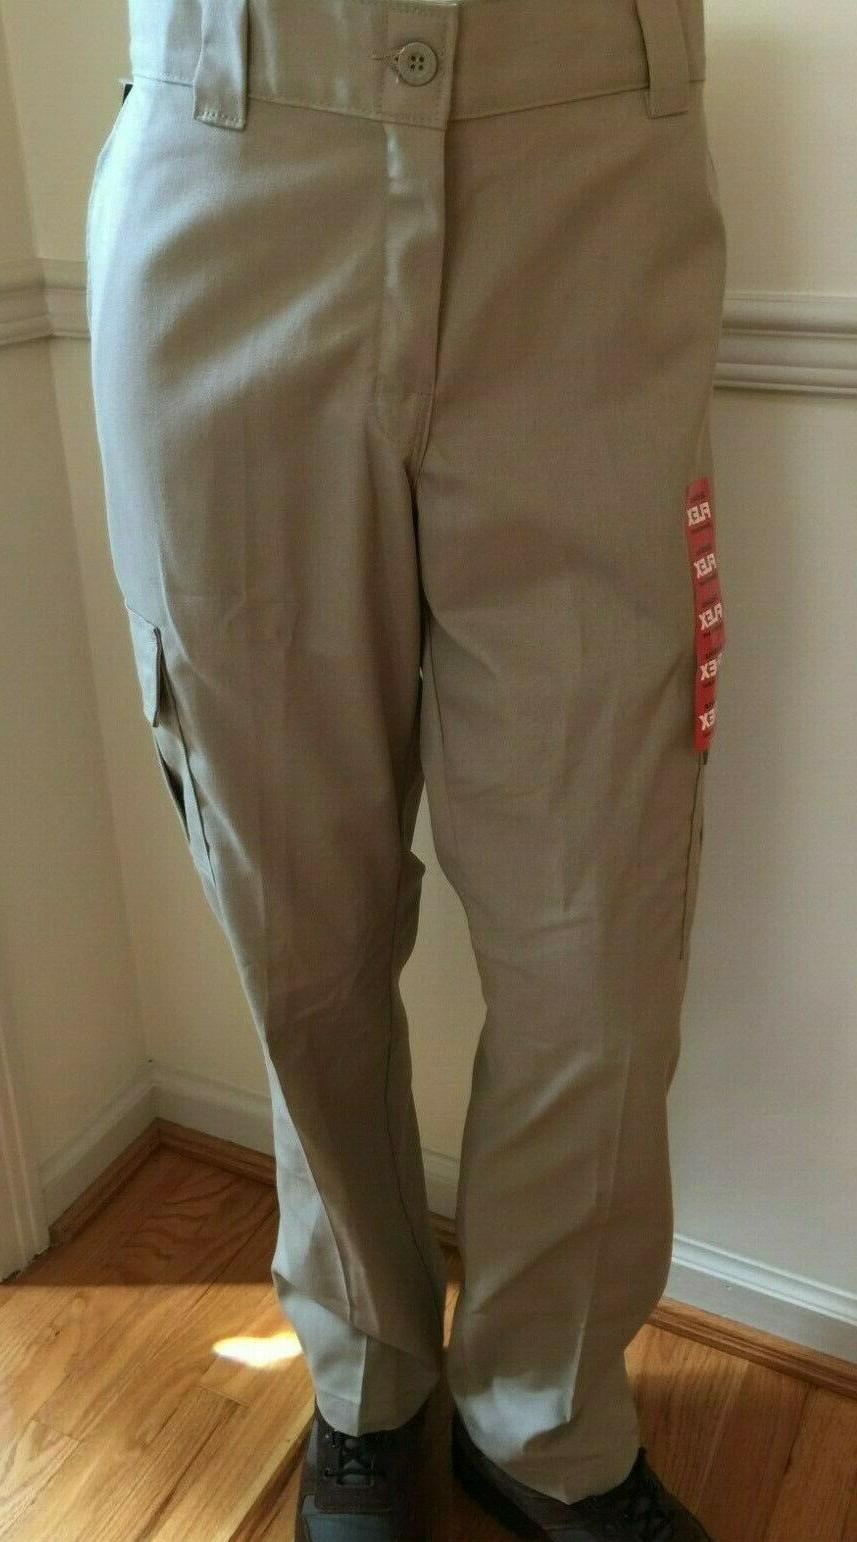 NWT Flex WP595 DP Dickies Work Uniform Cargo Pants Slacks Tan